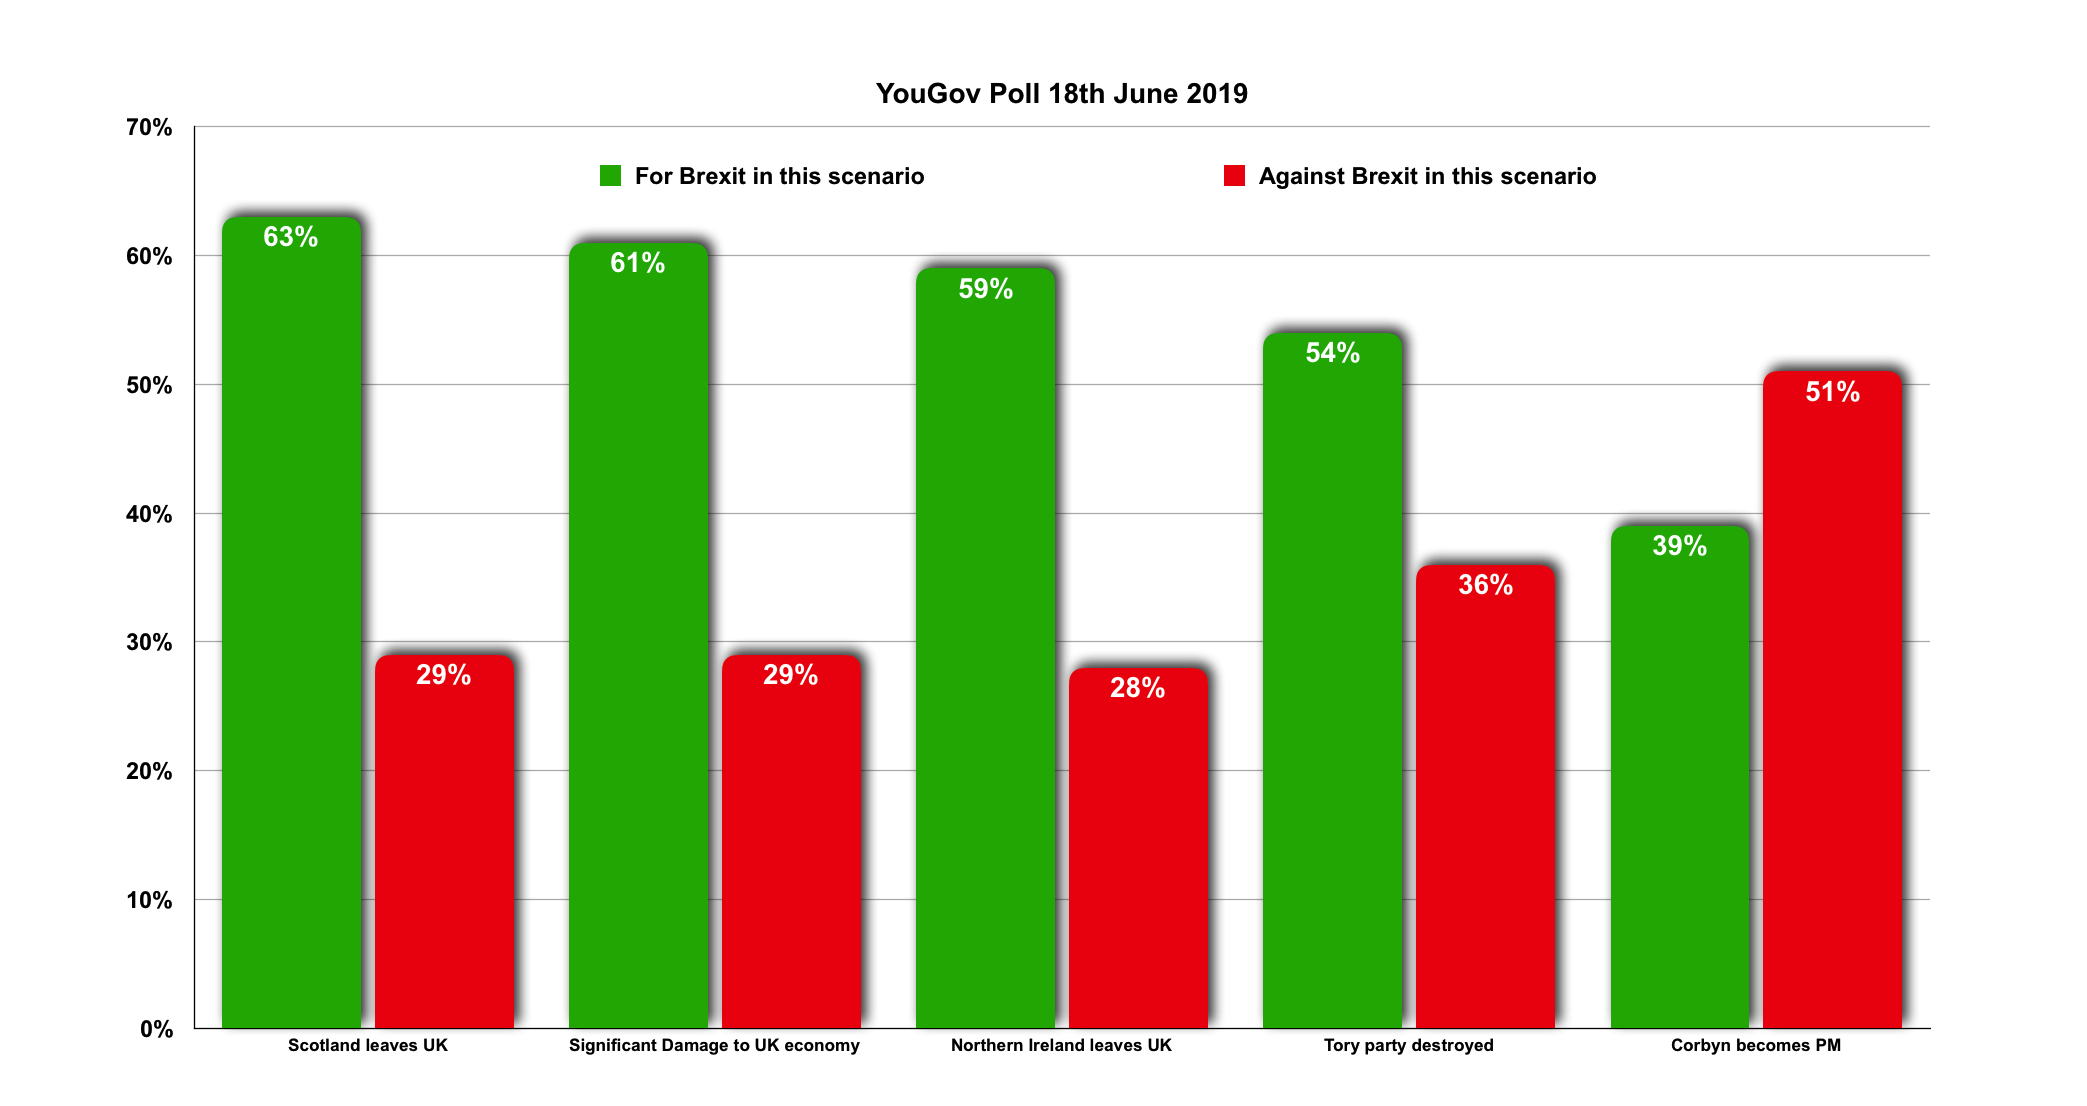 YouGov Poll 18-06-19